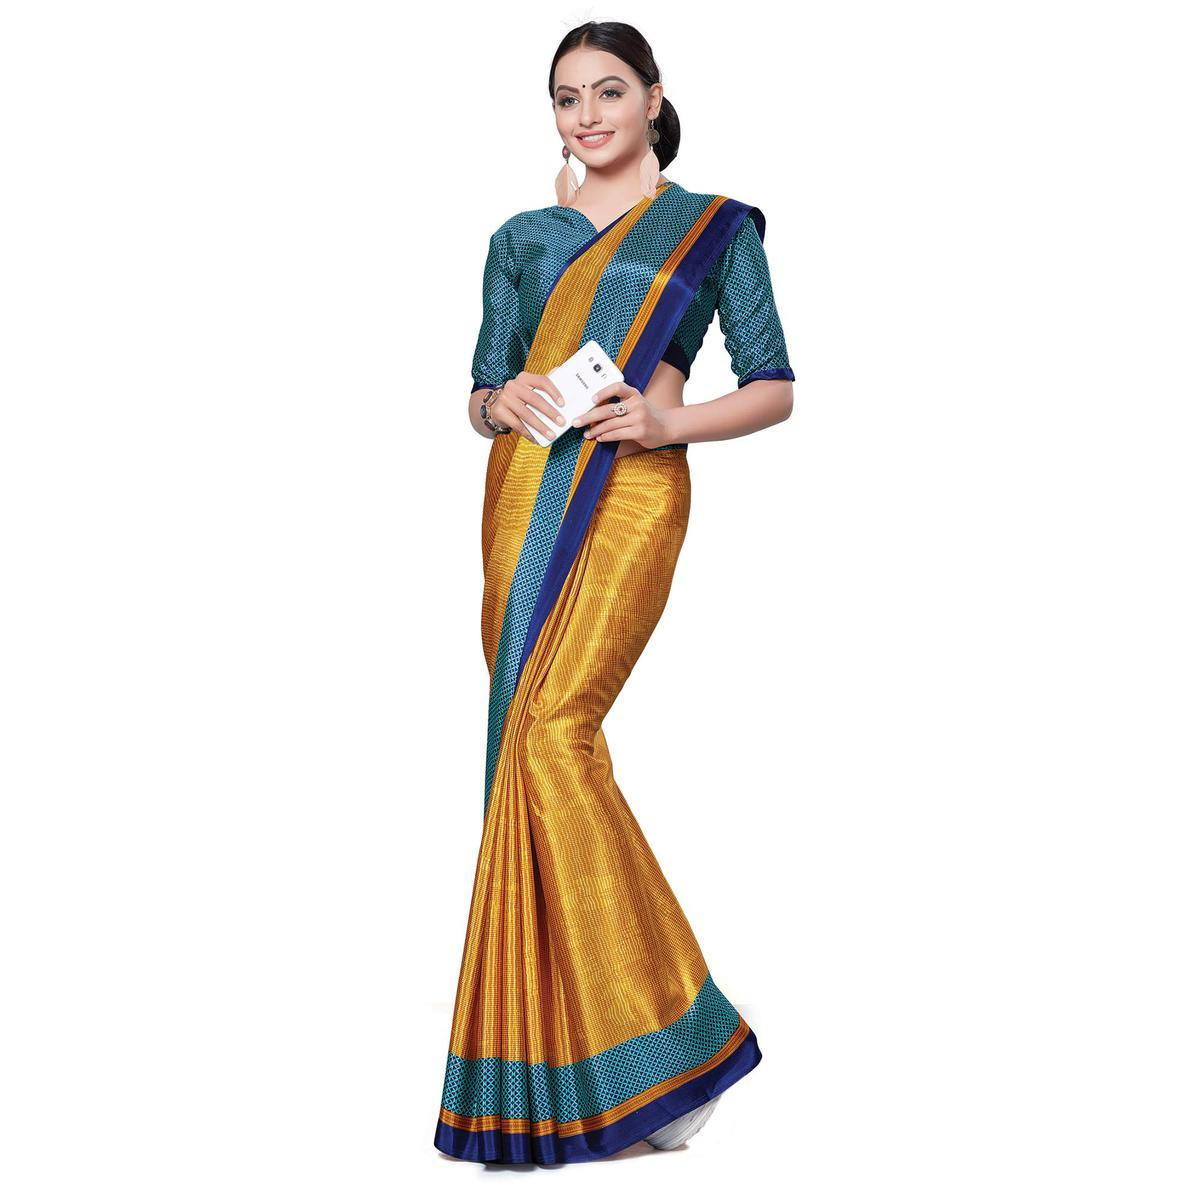 Pleasance Mustard Yellow Colored Casual Wear Printed Crepe Saree